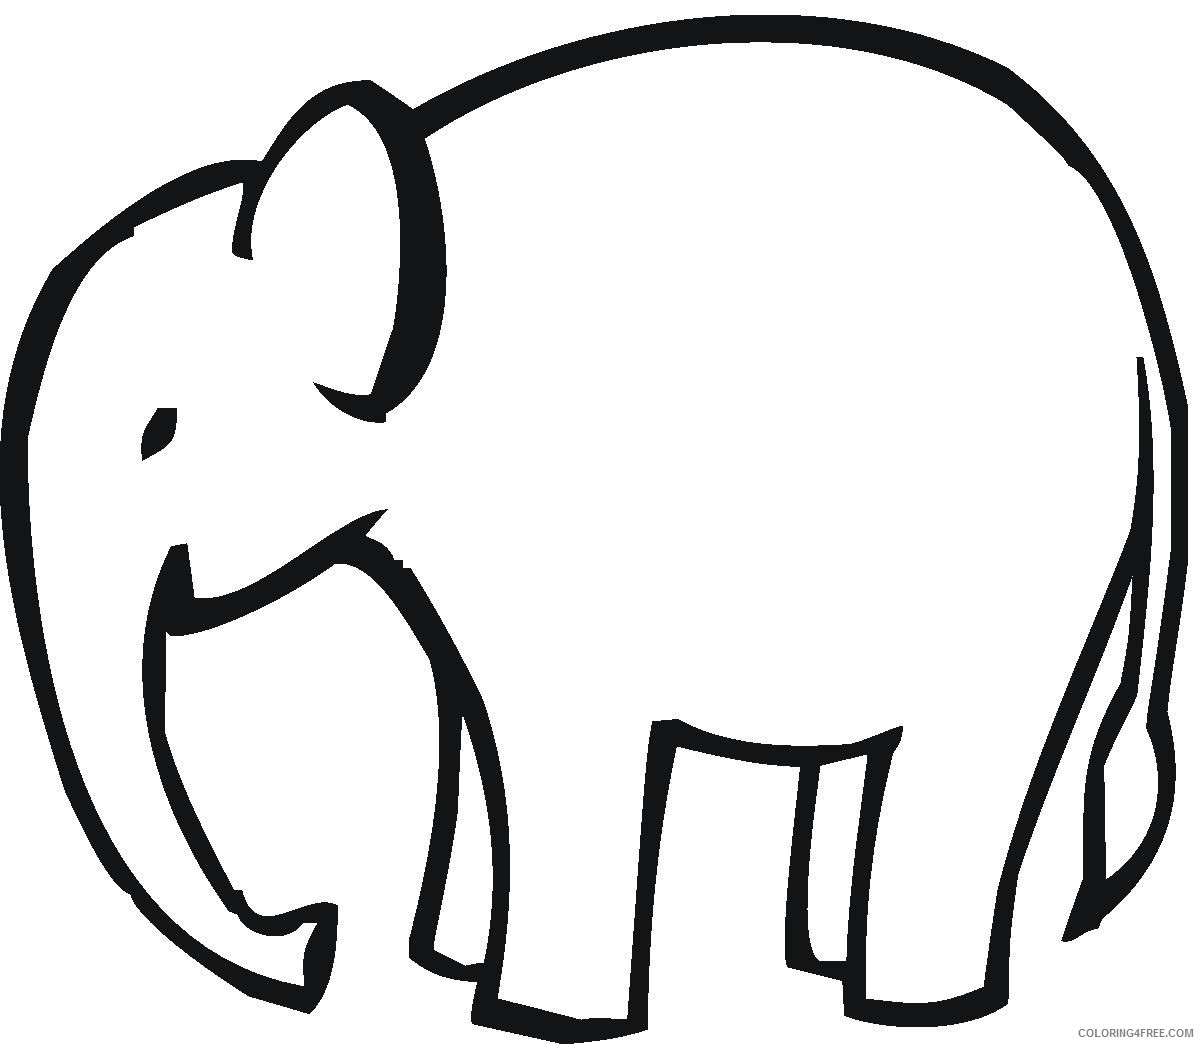 Elephant Outline Coloring Pages elephant head outline mama clipart Printable Coloring4free